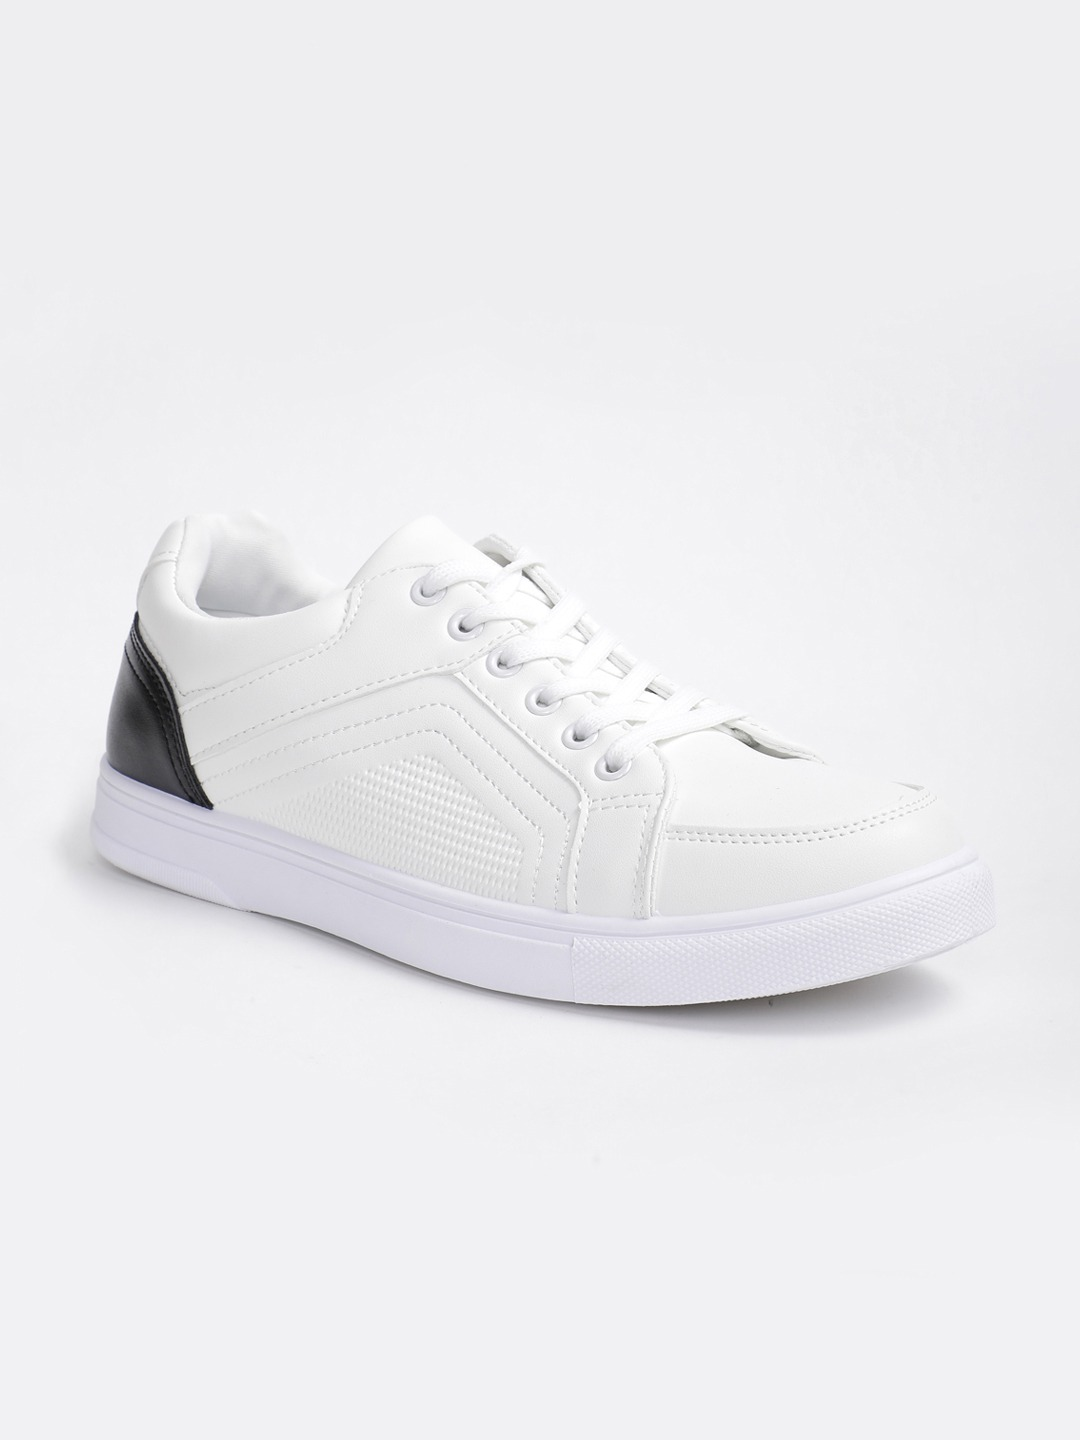 White Colourblocked Sneakers